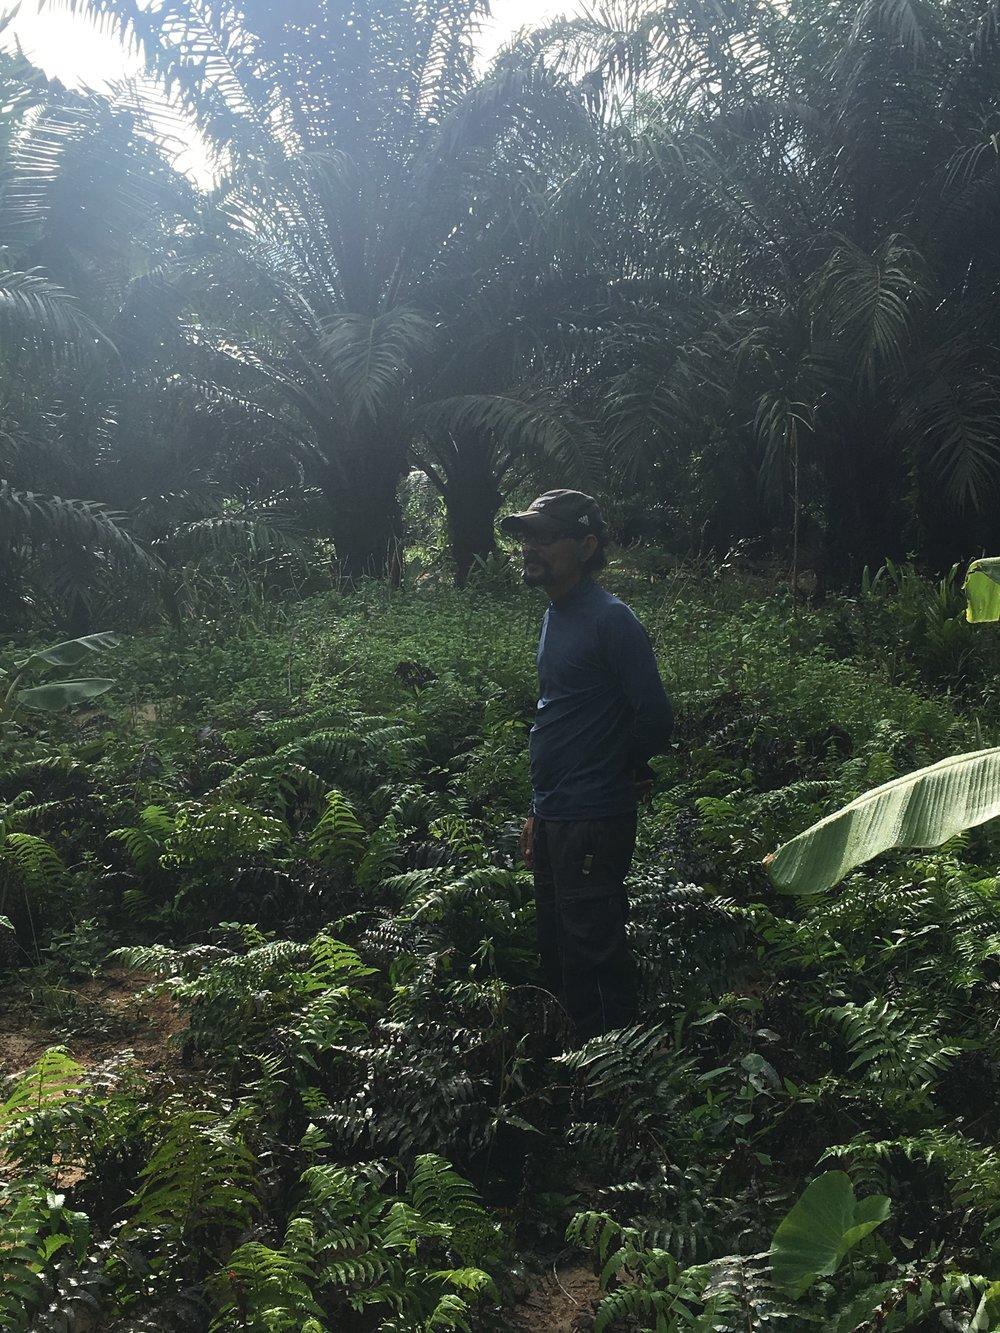 P'Ju (pictured) is skeptical of his relatives', friends', and neighbors' reliance on monocultures such as rubber and oil palm (pictured in background), given their households' direct exposure to the vagaries of global commodity markets. P'Ju advocates for food autonomy and welcomes volunteers of all ages and nationalities to visit and work with him.